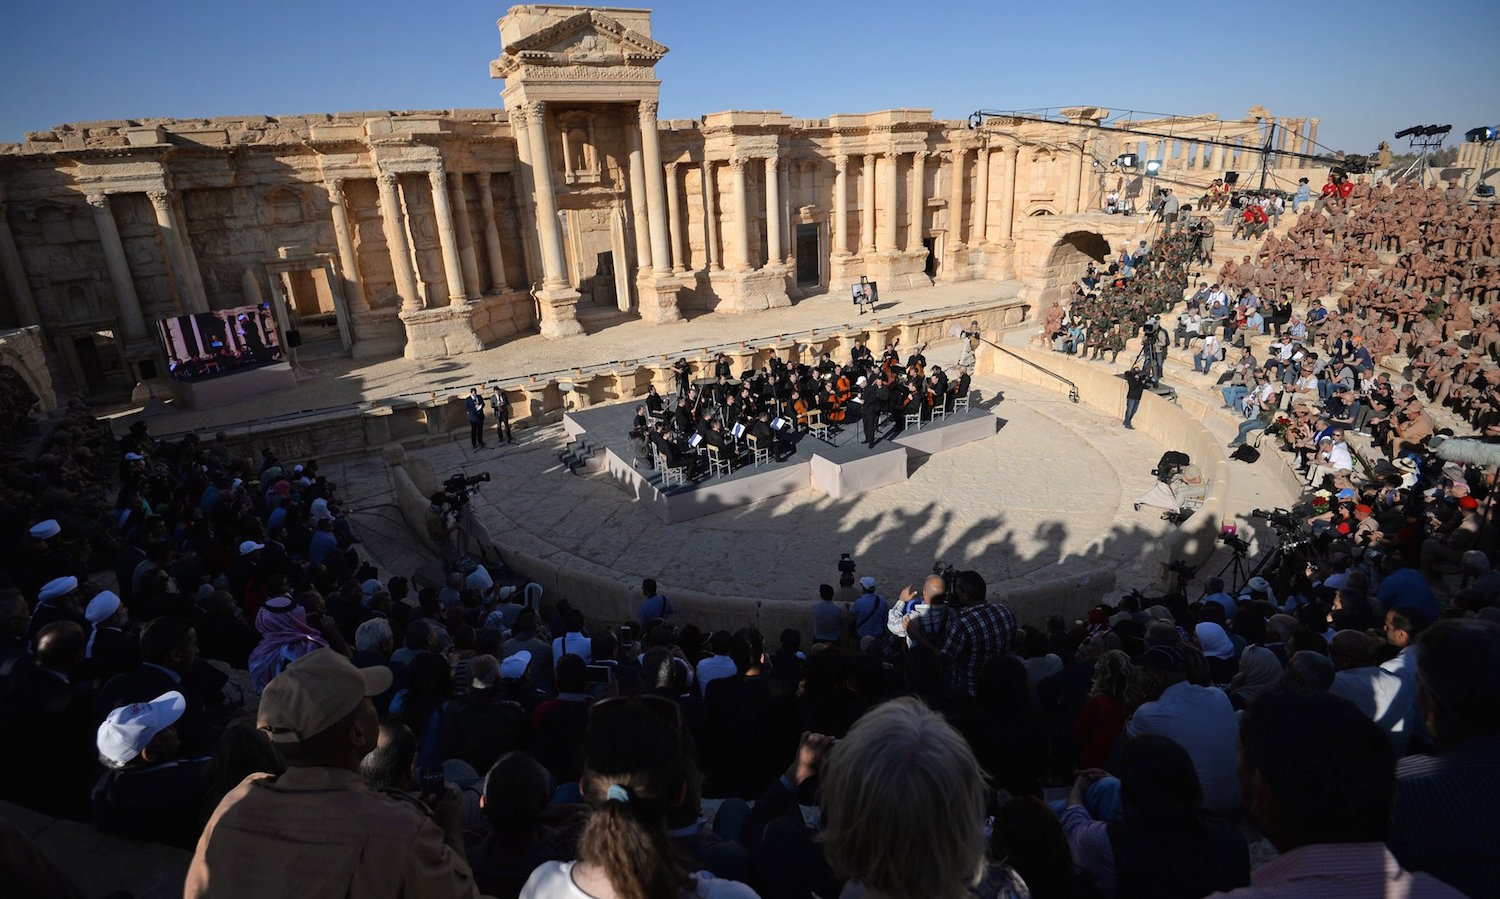 The Mariinsky Theater Orchestra, conducted by Valery Gergiev, performs in Palmyra, Syria in May 2016 (Kremlin image)